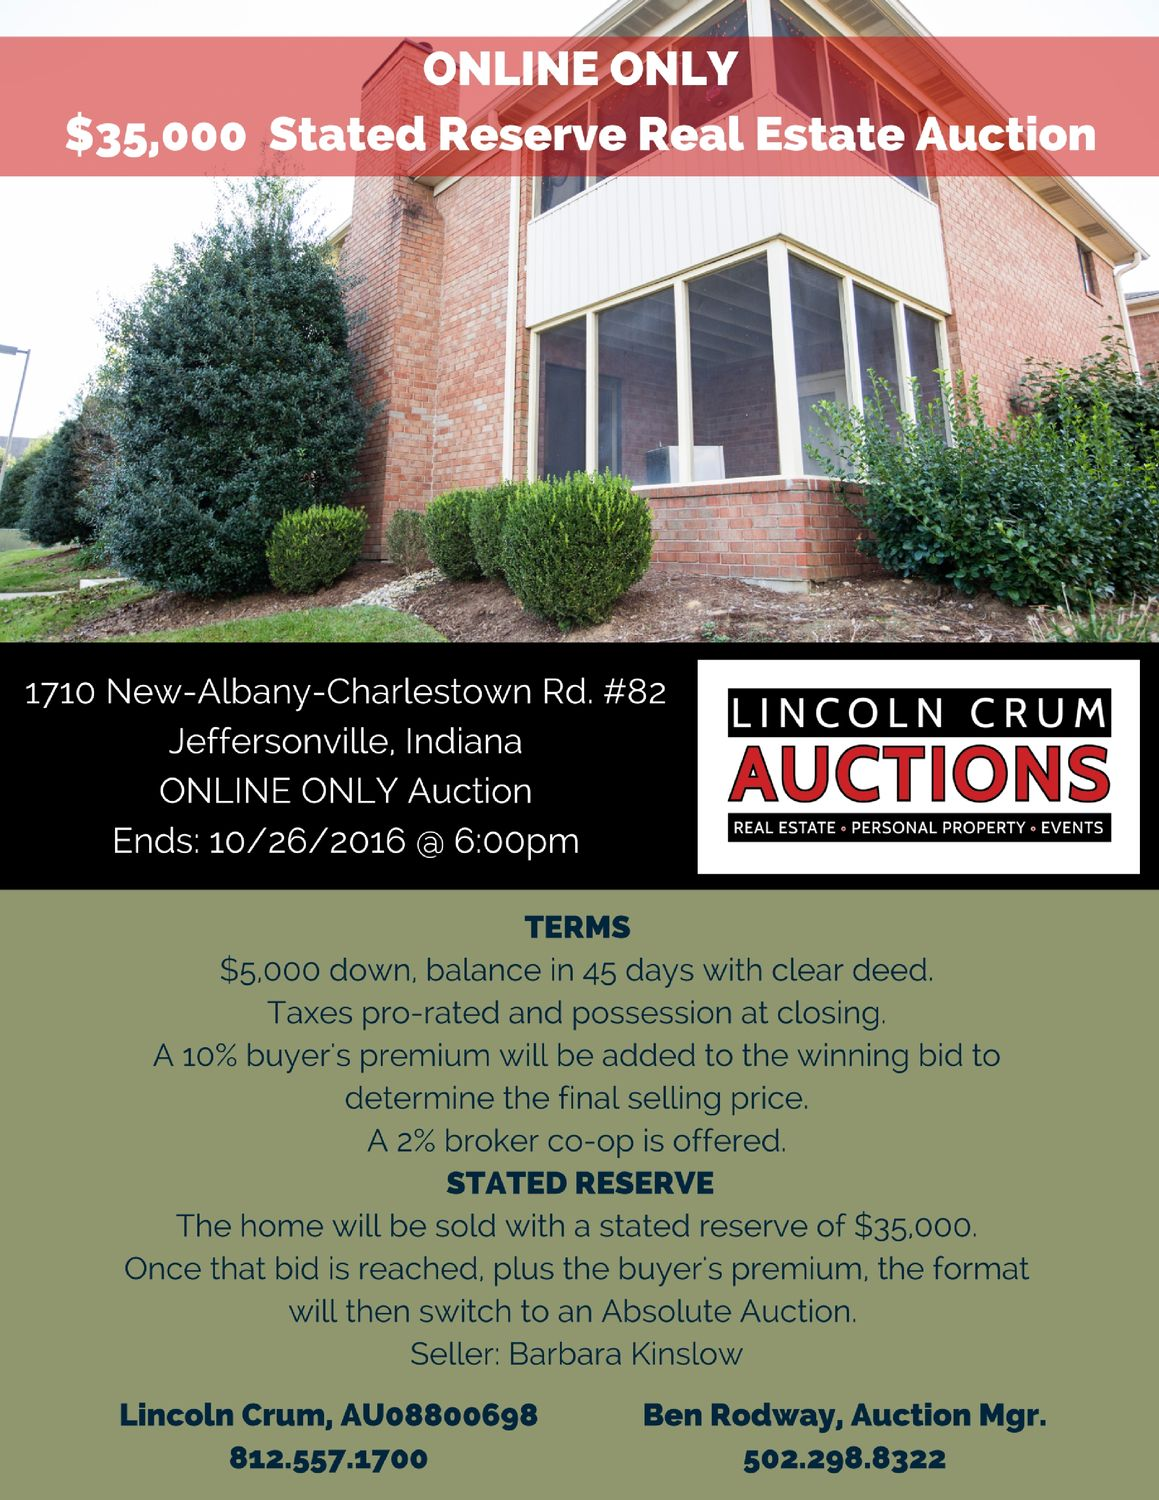 1710-new-albany-charlestown-rd-82-online-only-auction-flier